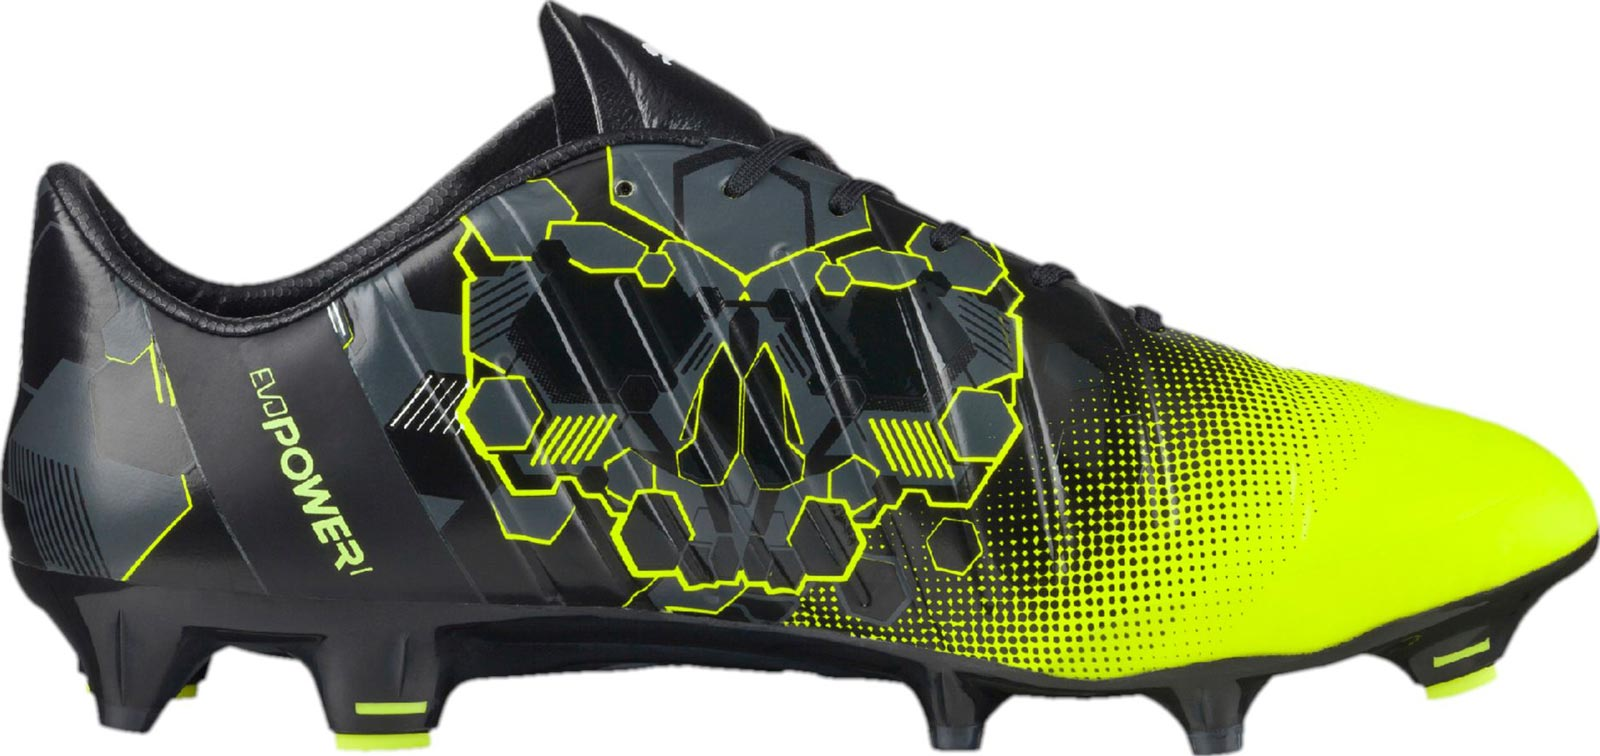 40fc00a86340 Puma Stunning Graphic evoPOWER 1.3 Boots Revealed